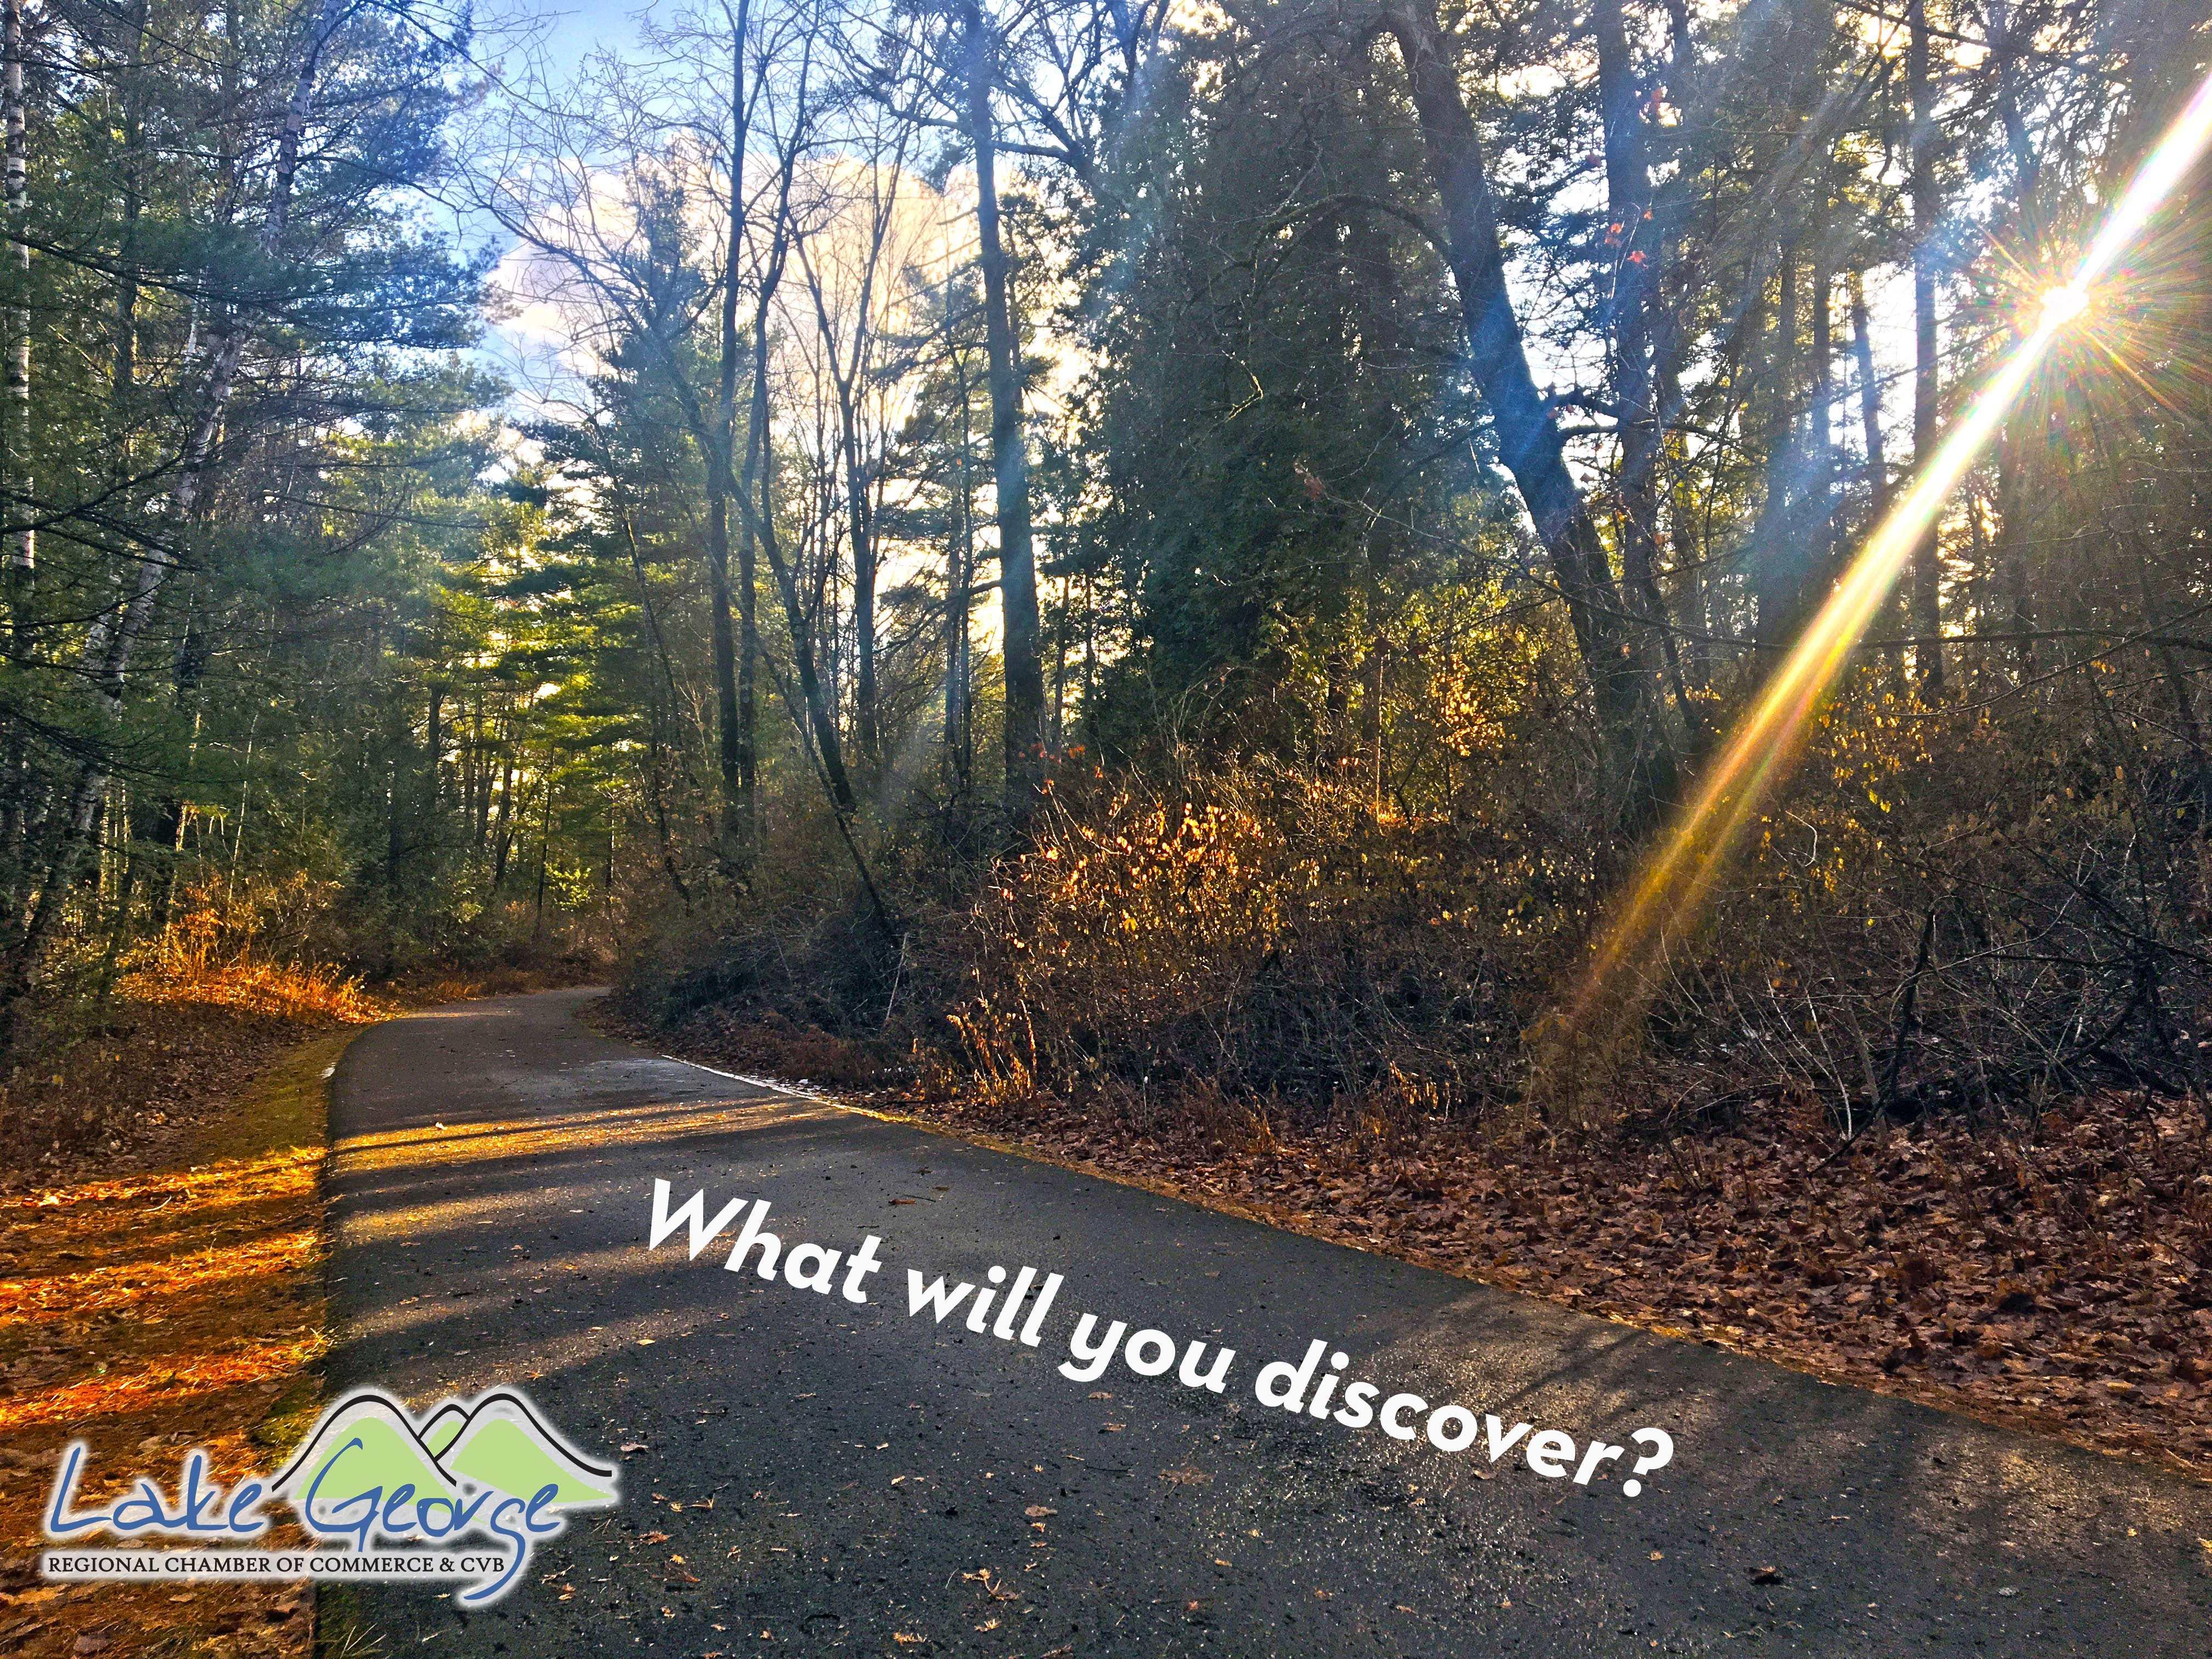 New Social Media Campaign: What will you discover?